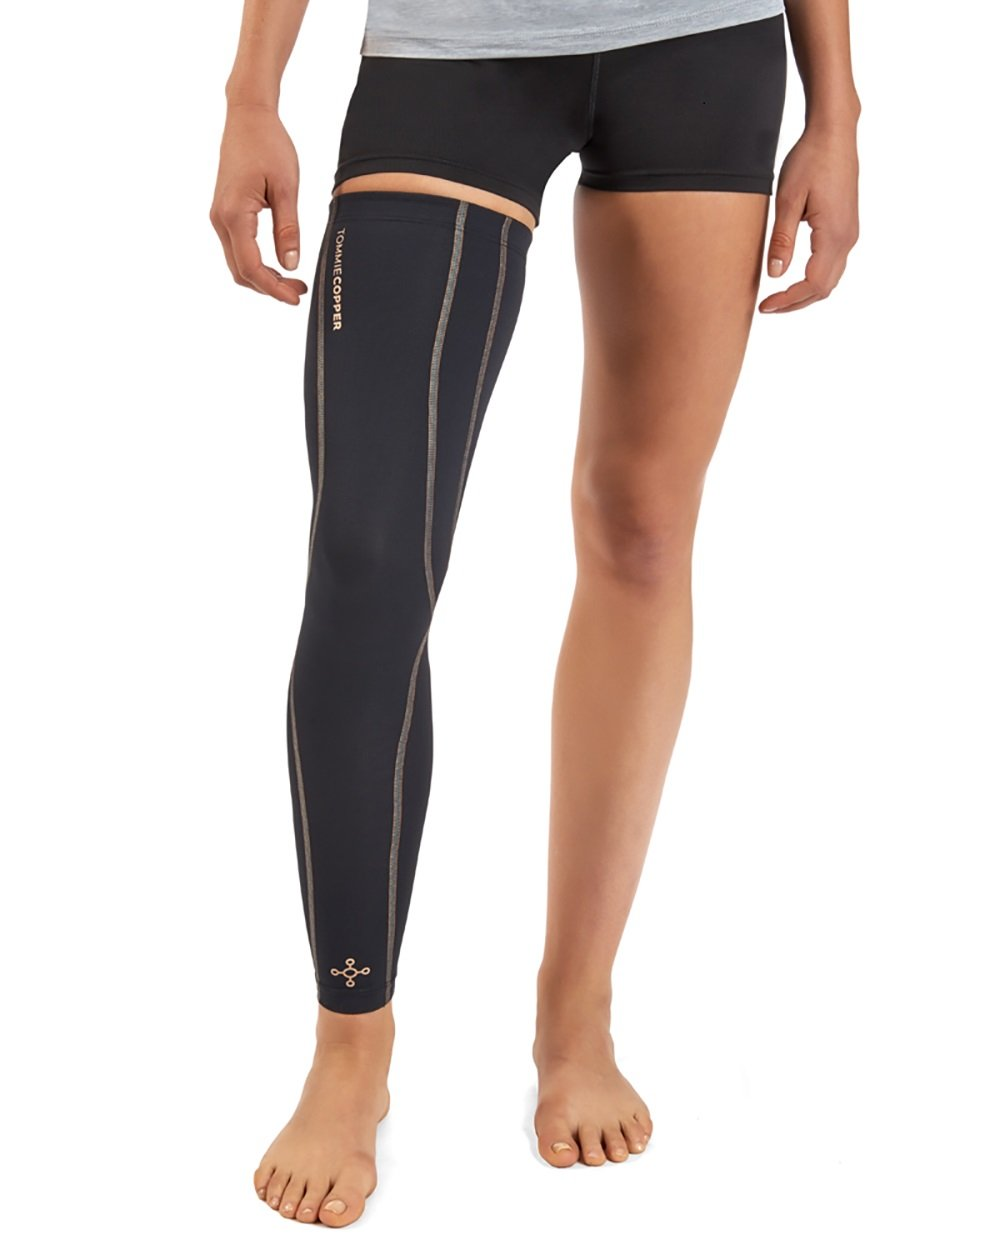 Stores that sell tommie copper - Tommie Copper Womens Performance Full Leg Sleeve 2 0